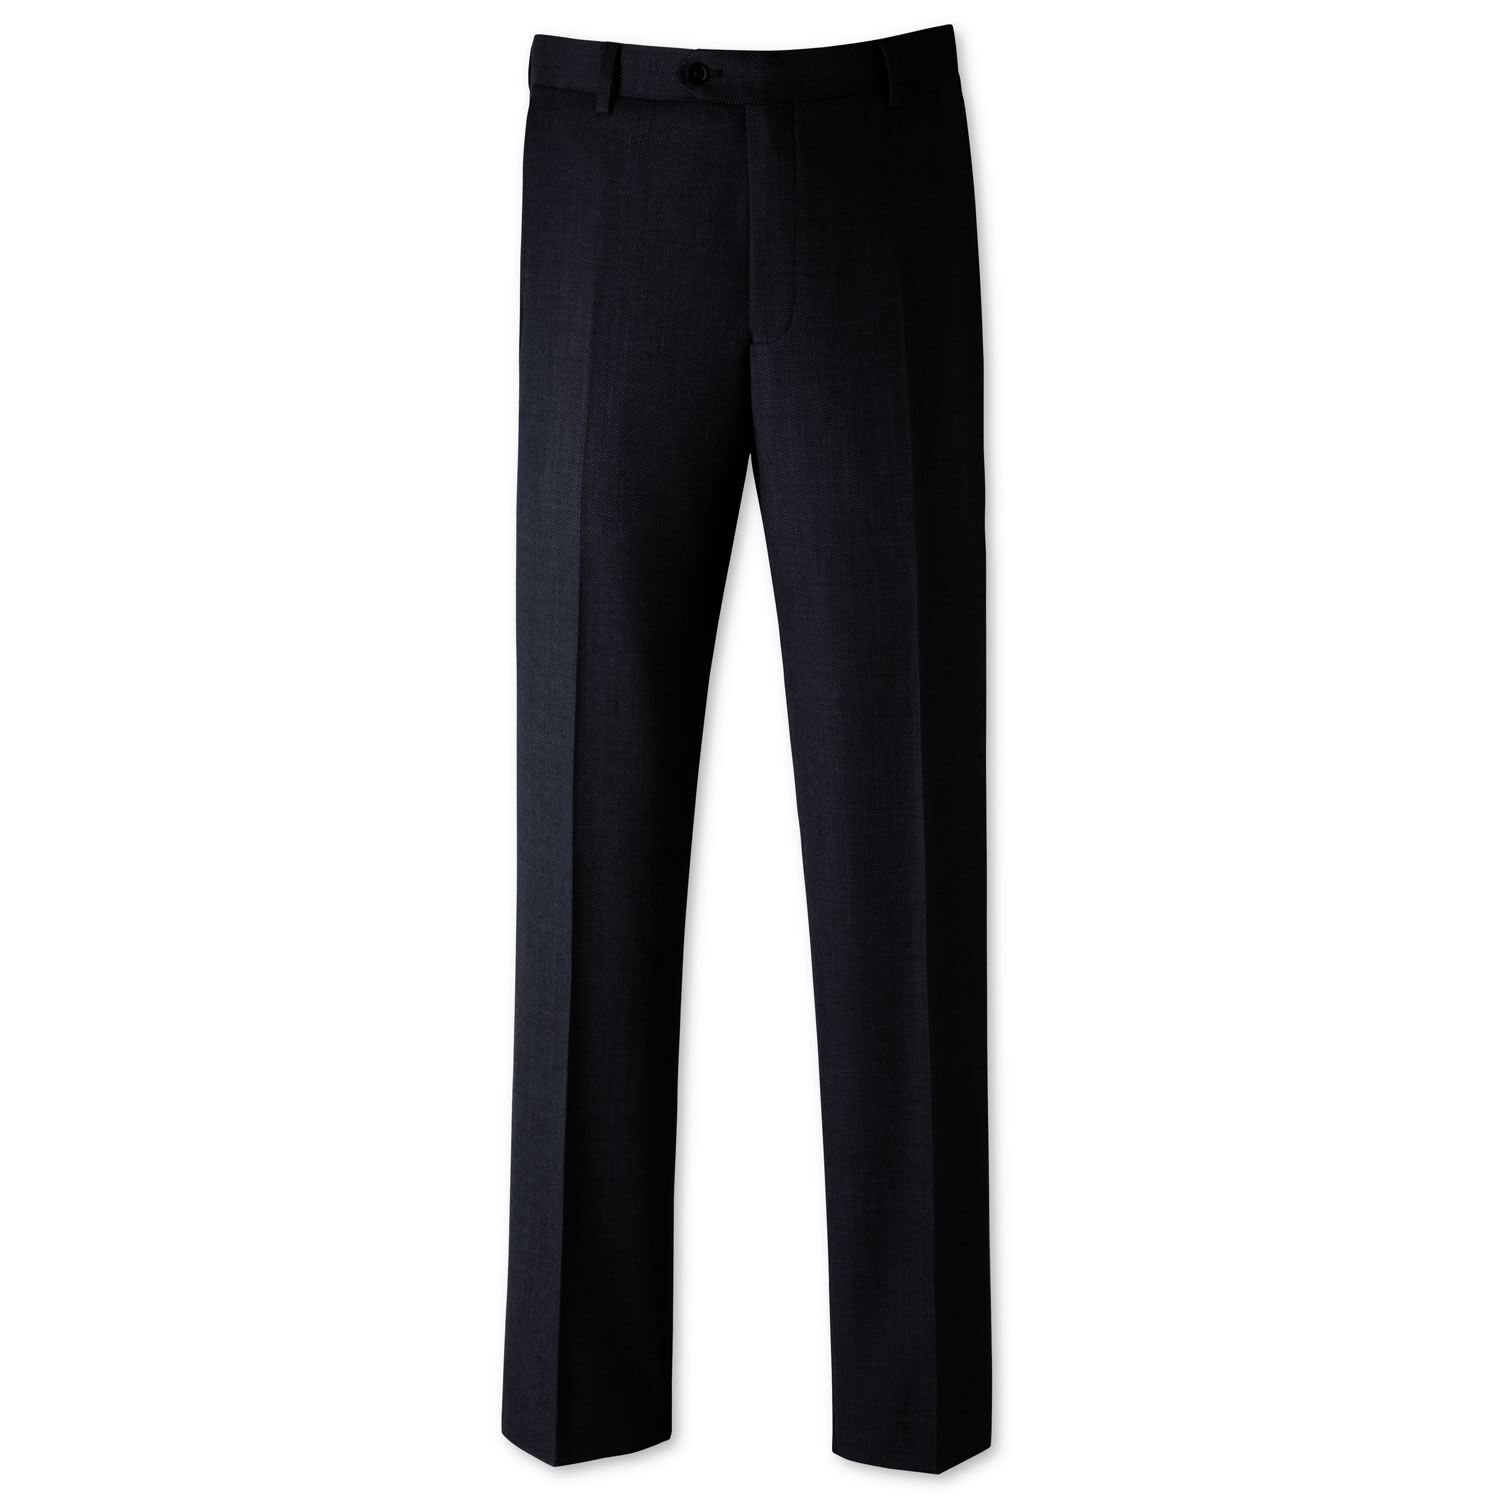 Mid Blue Classic Fit Birdseye Business Suit Trousers Size W30 L38 by Charles Tyrwhitt